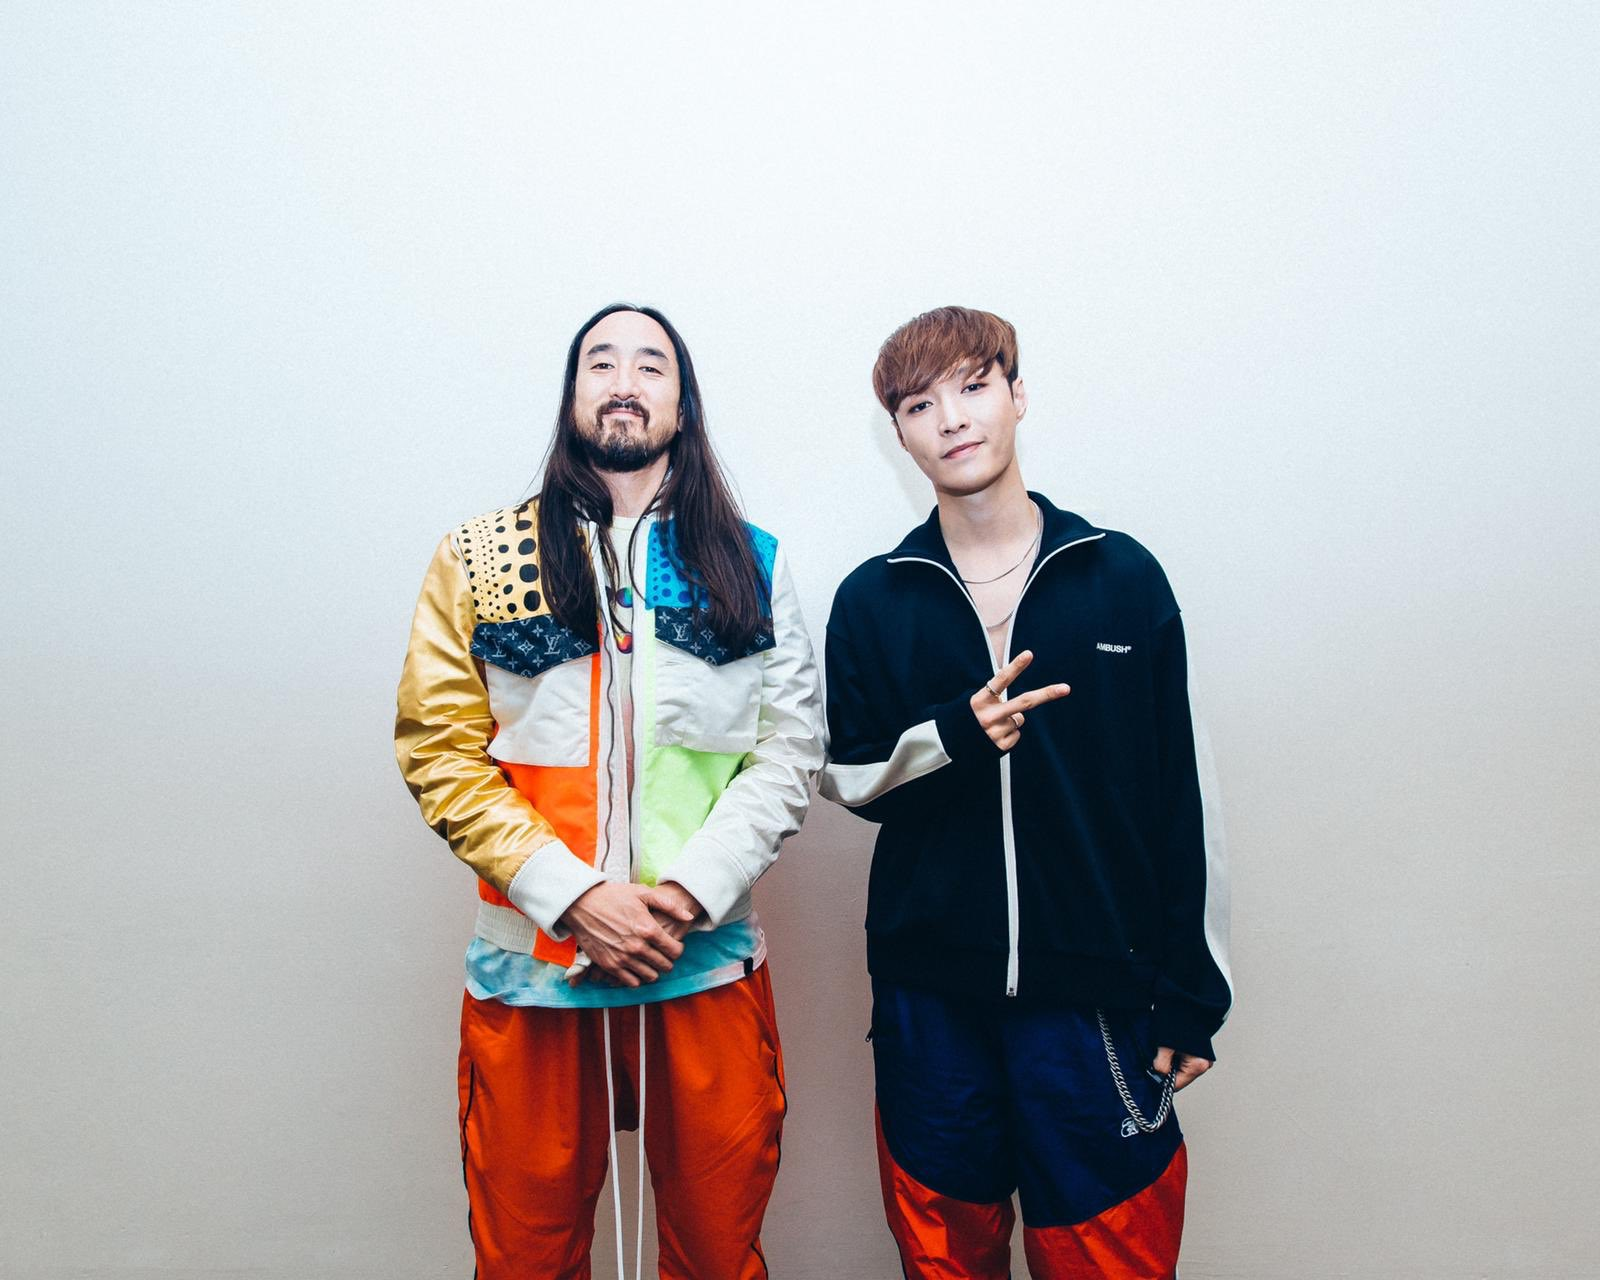 Homies @layzhang https://t.co/daPu8h1ODP